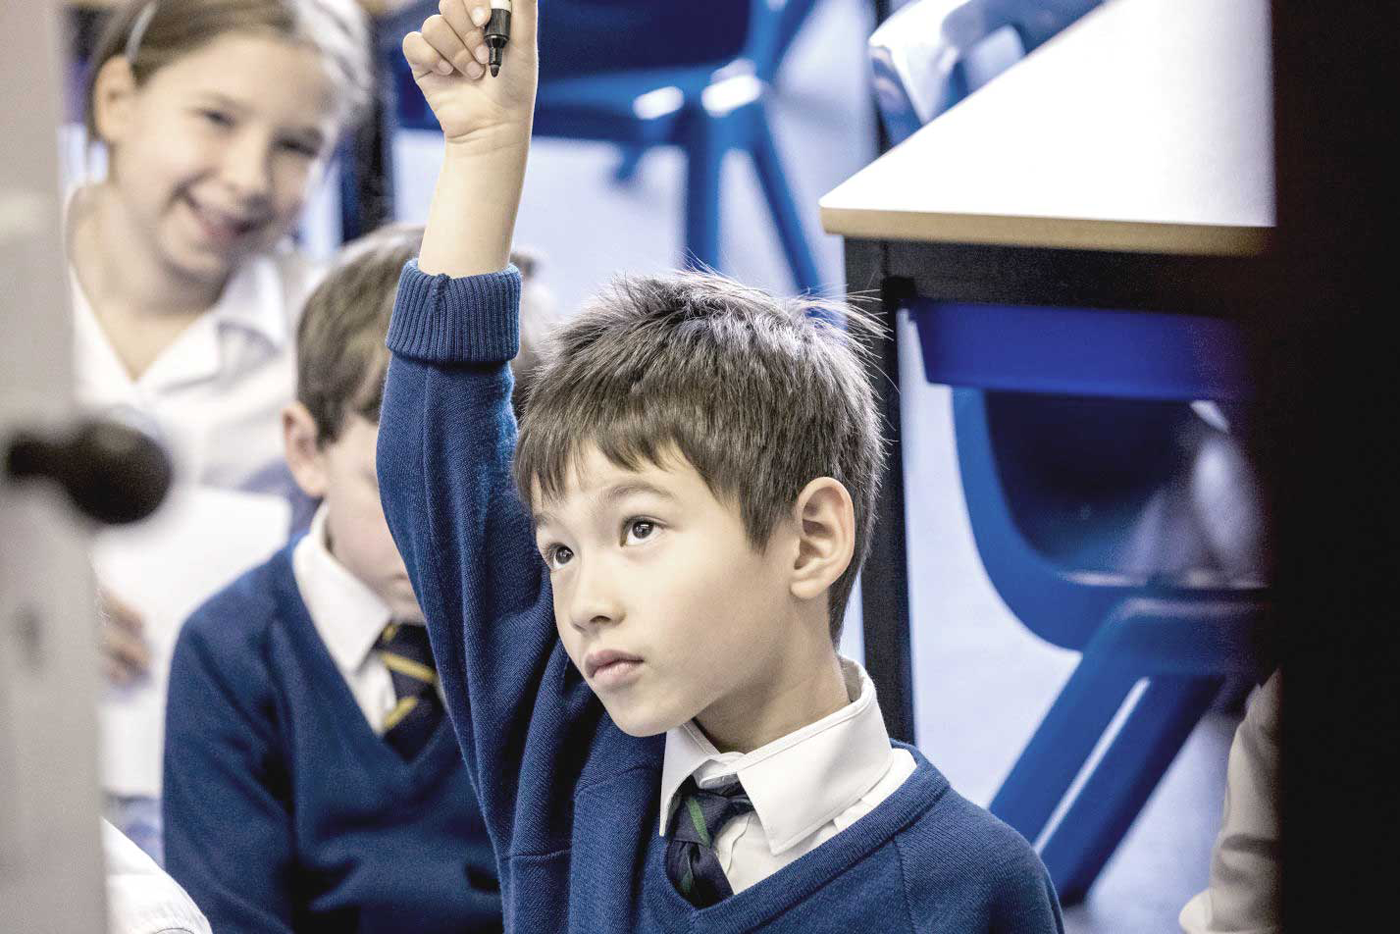 boy in class raising his hand